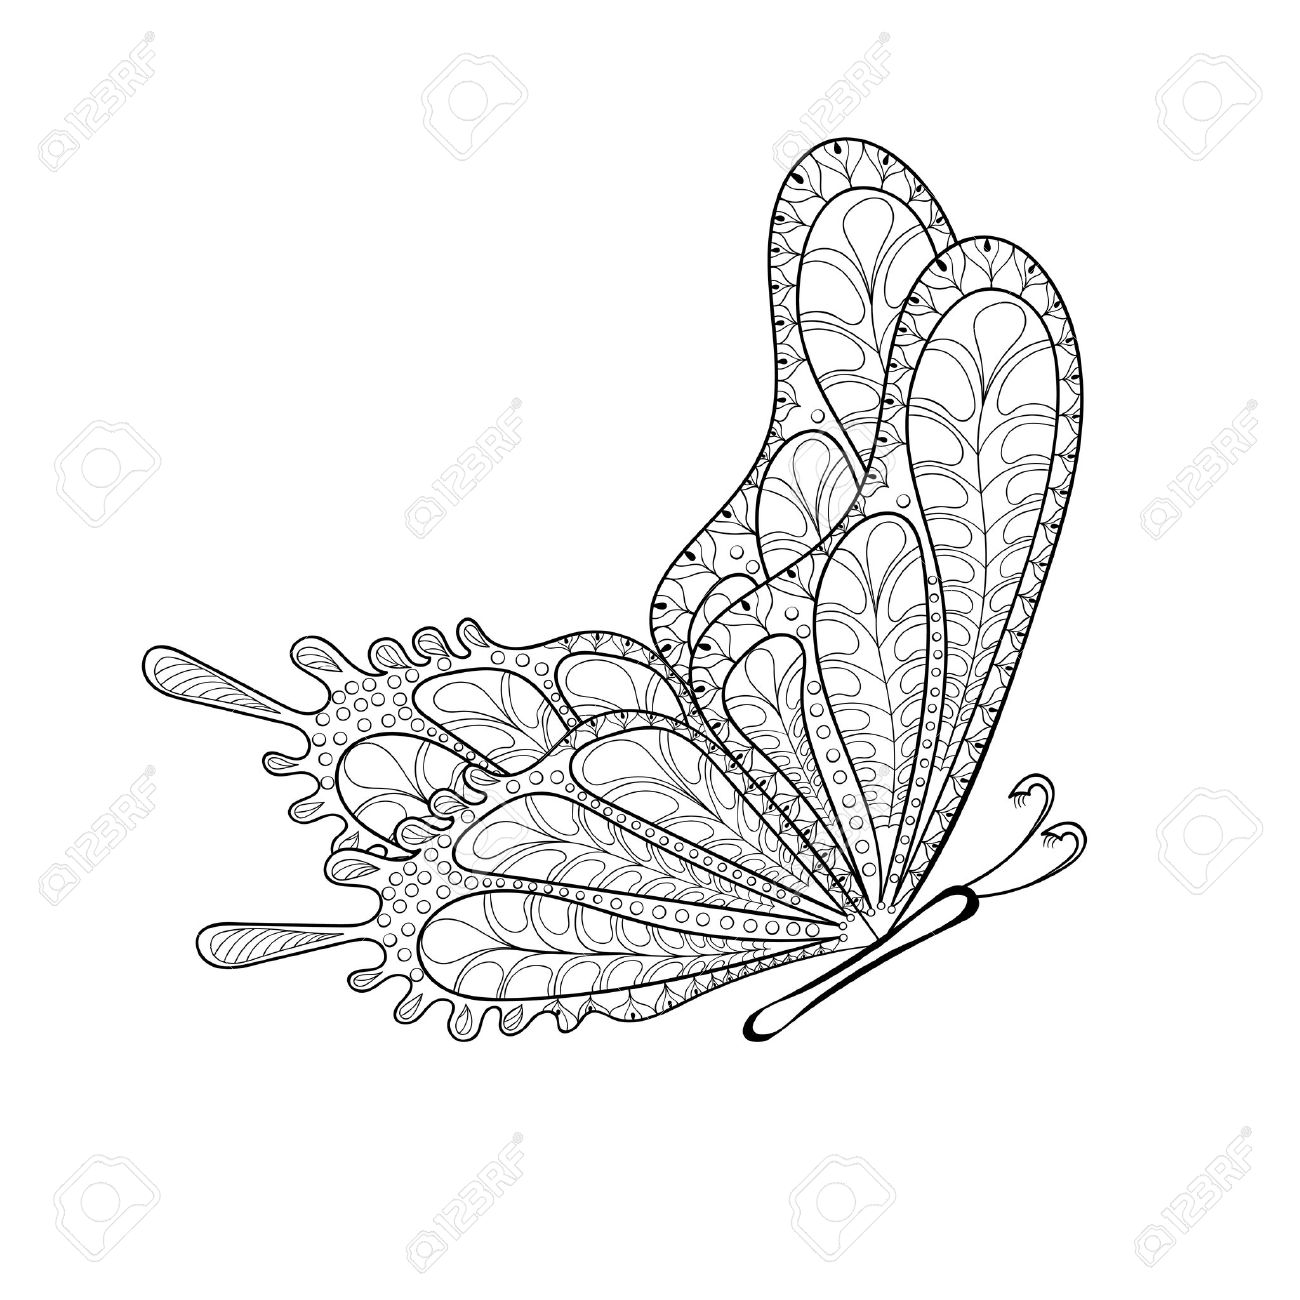 hand drawn tribal flying butterfly for adult anti stress coloring pages post card t - Stress Coloring